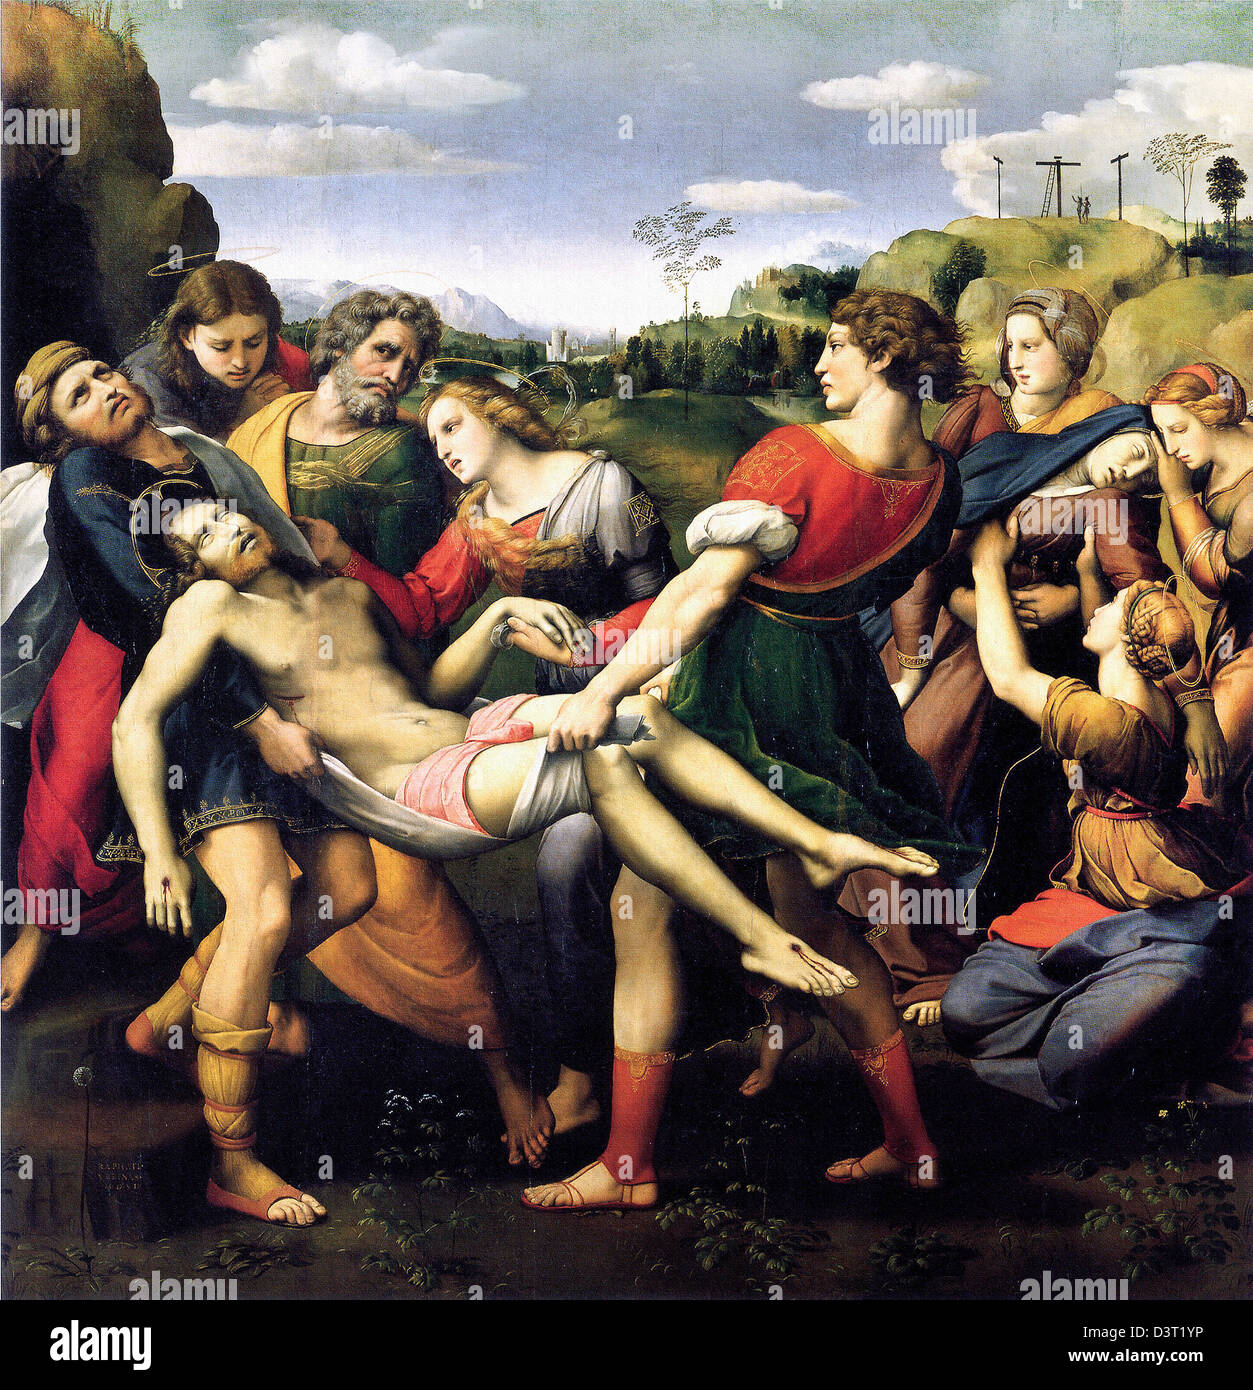 Raphael, The Deposition of Christ (The Entombment) 1507–1508 Oil on wood. Galleria Borghese, Rome - Stock Image